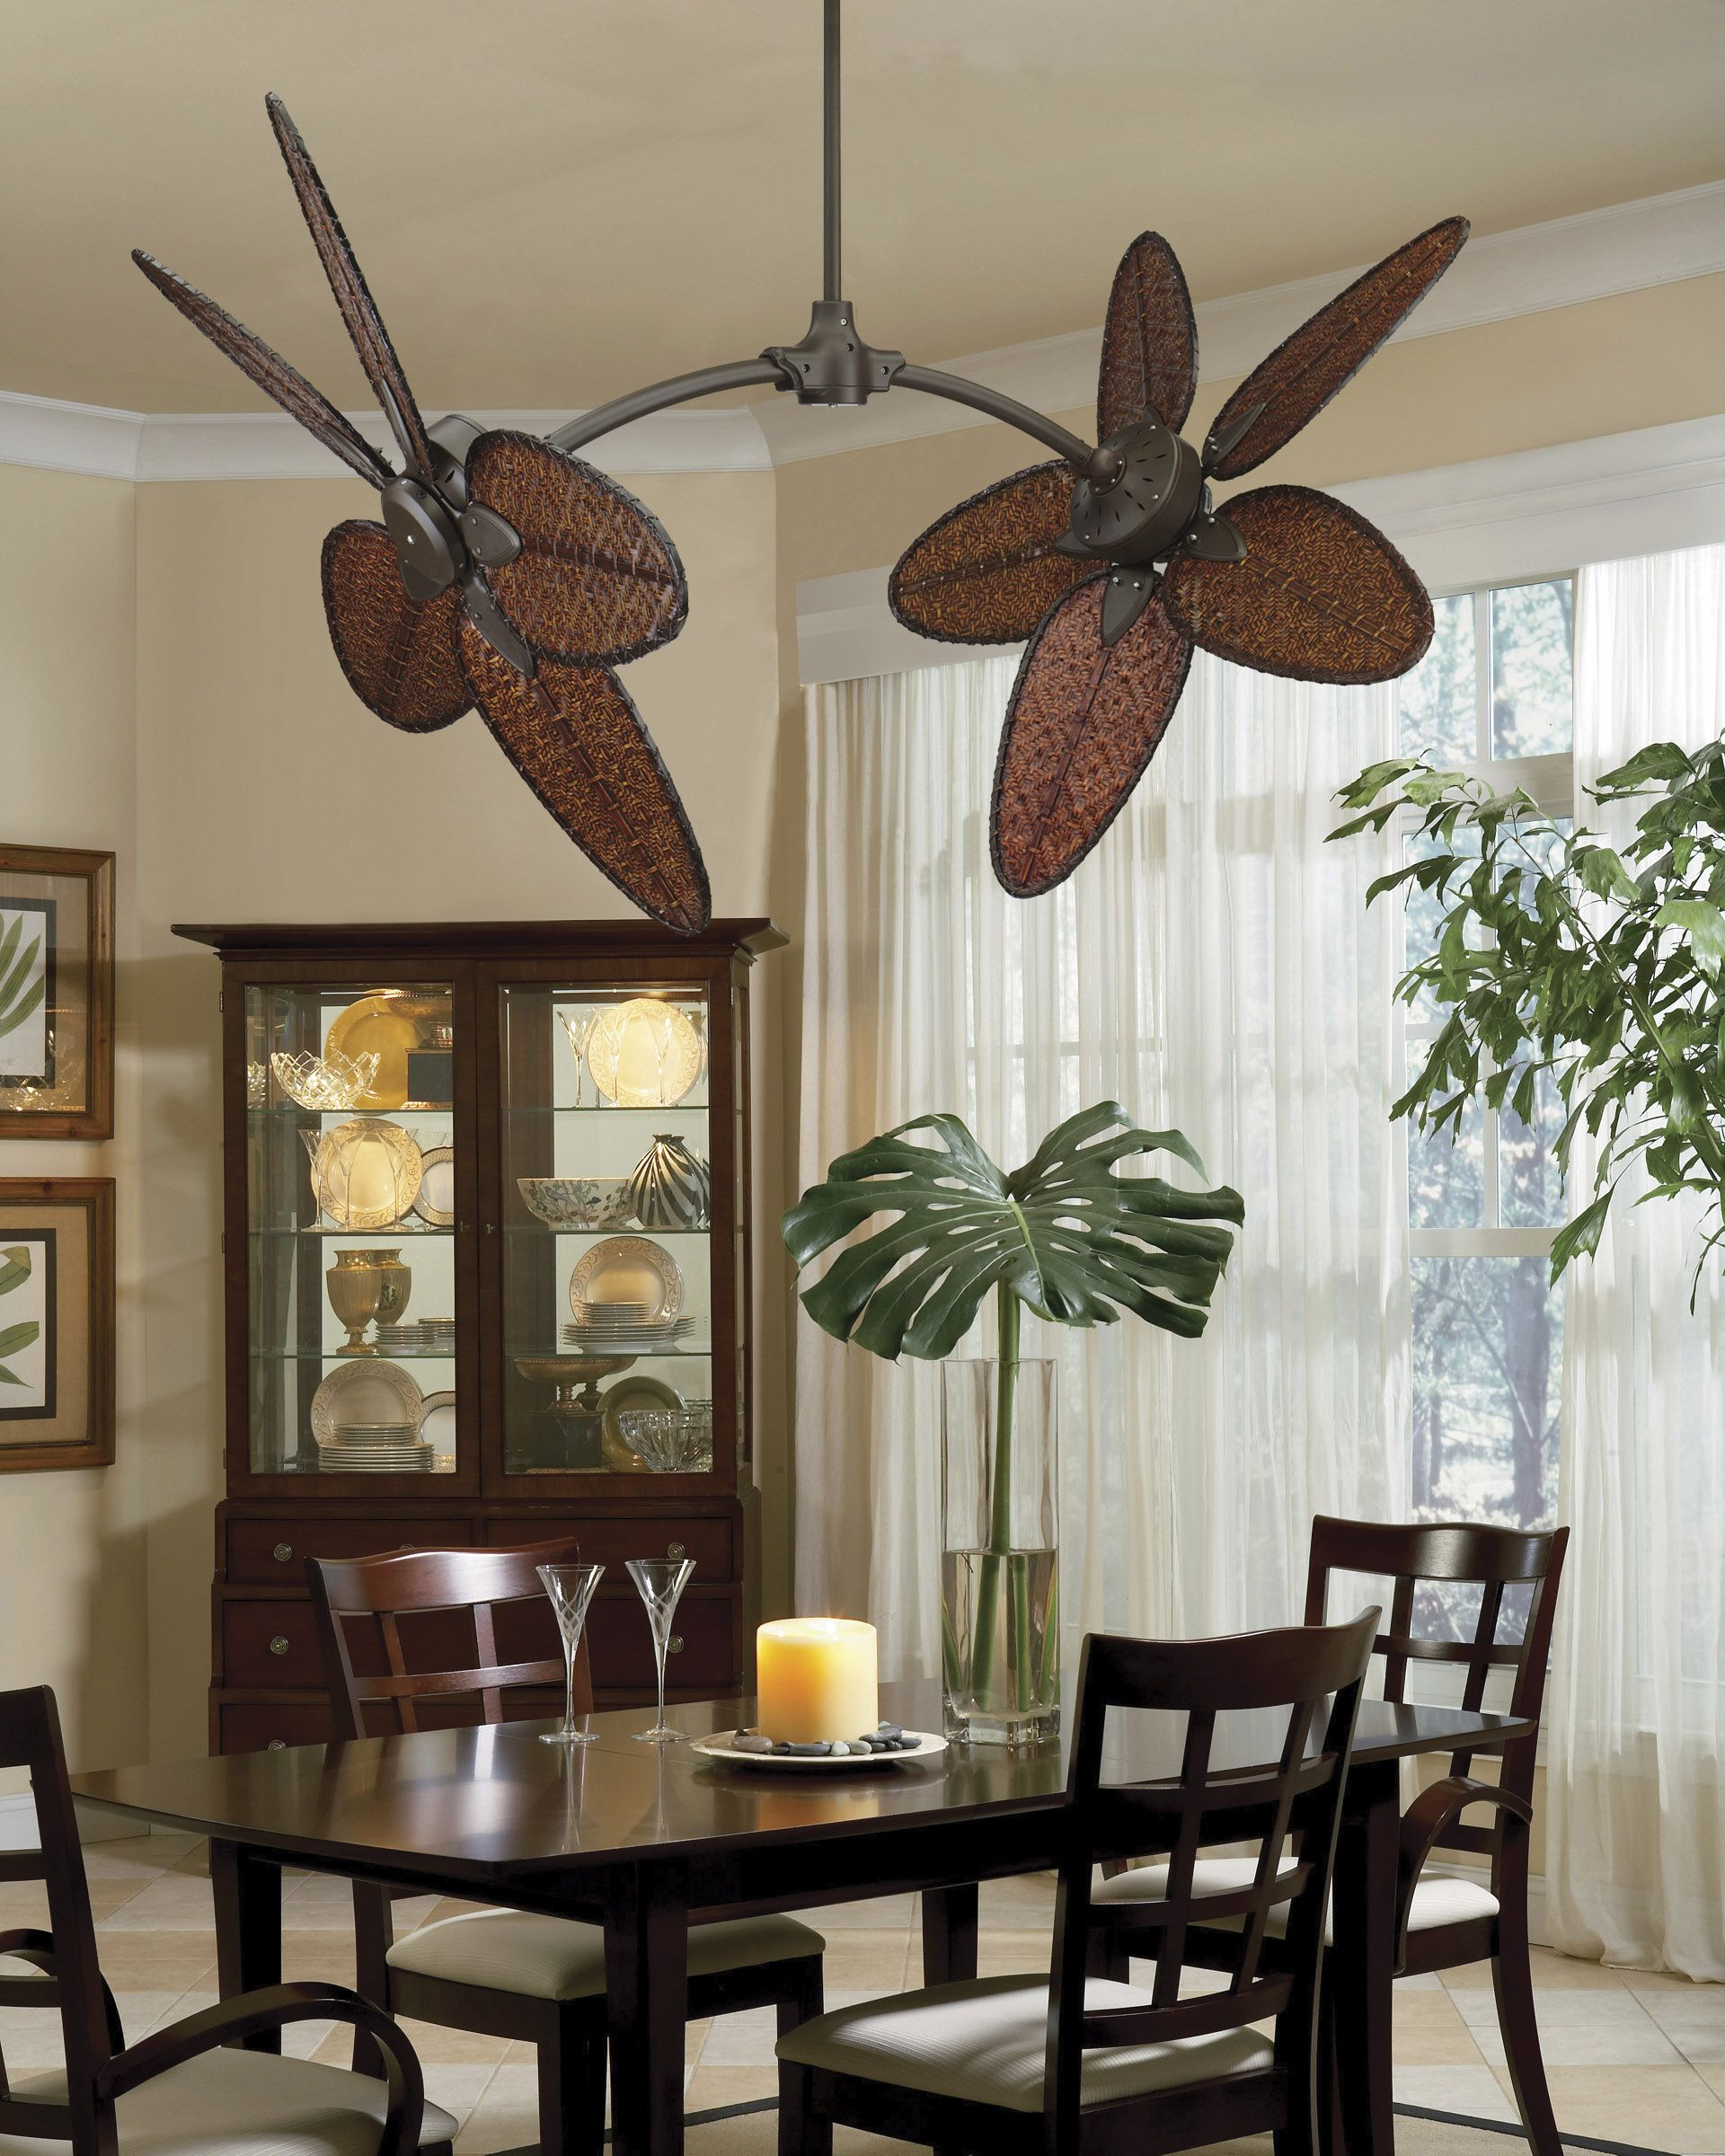 troposair ceiling l com rubbed fan oil pixball duet motor in dual oscillating